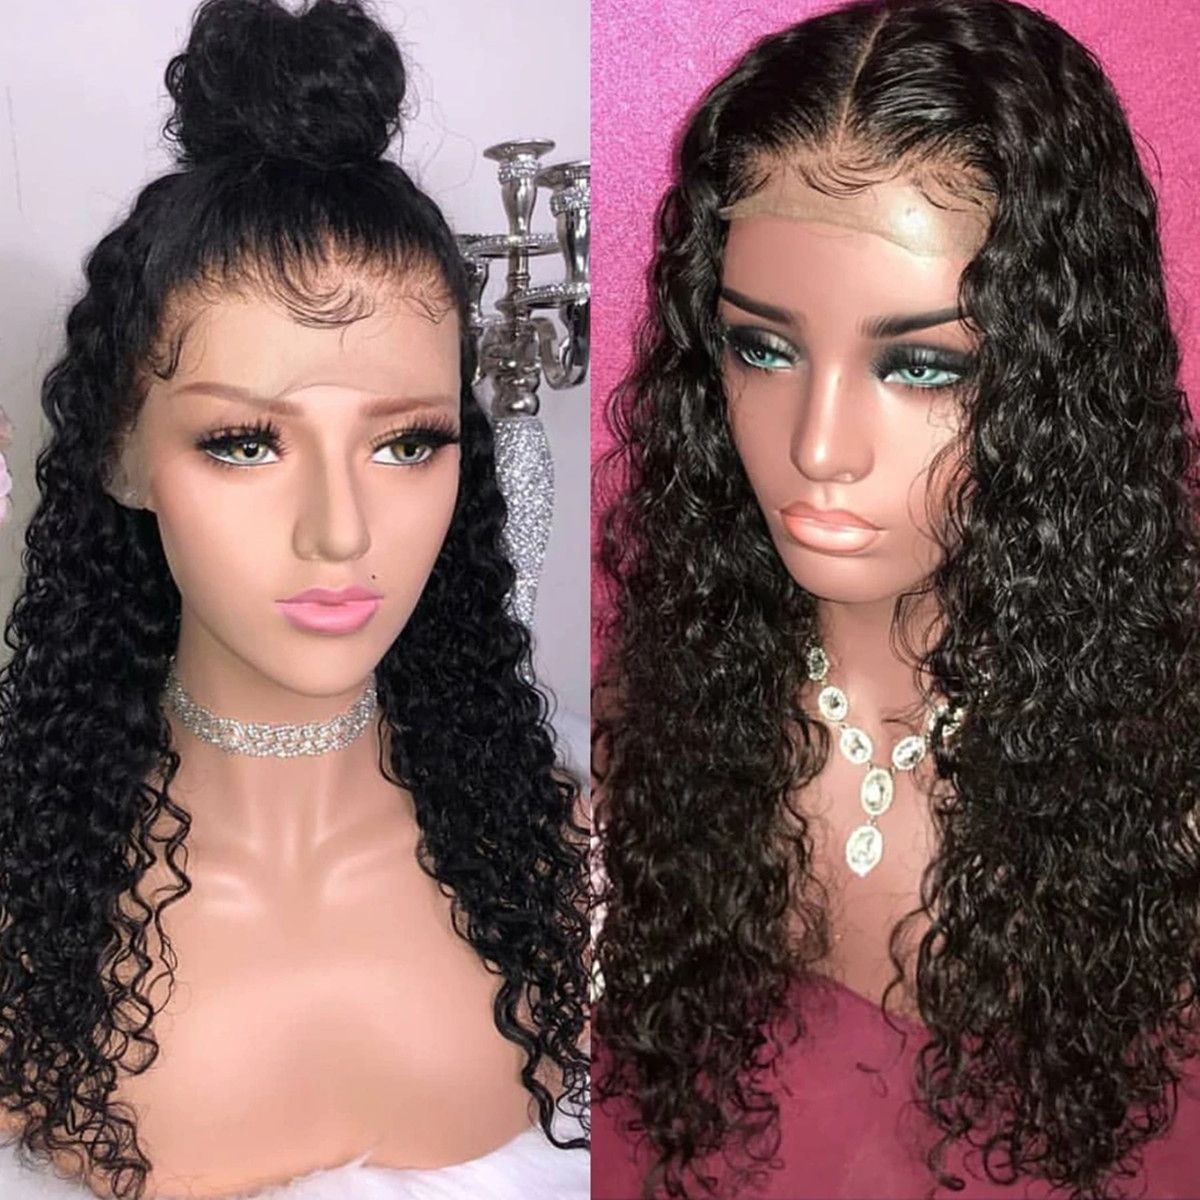 Pin By Lwigs On Lwigs New Arrival Hair Style Human Hair Lace Wigs Curly Human Hair Wig Curly Lace Front Wigs